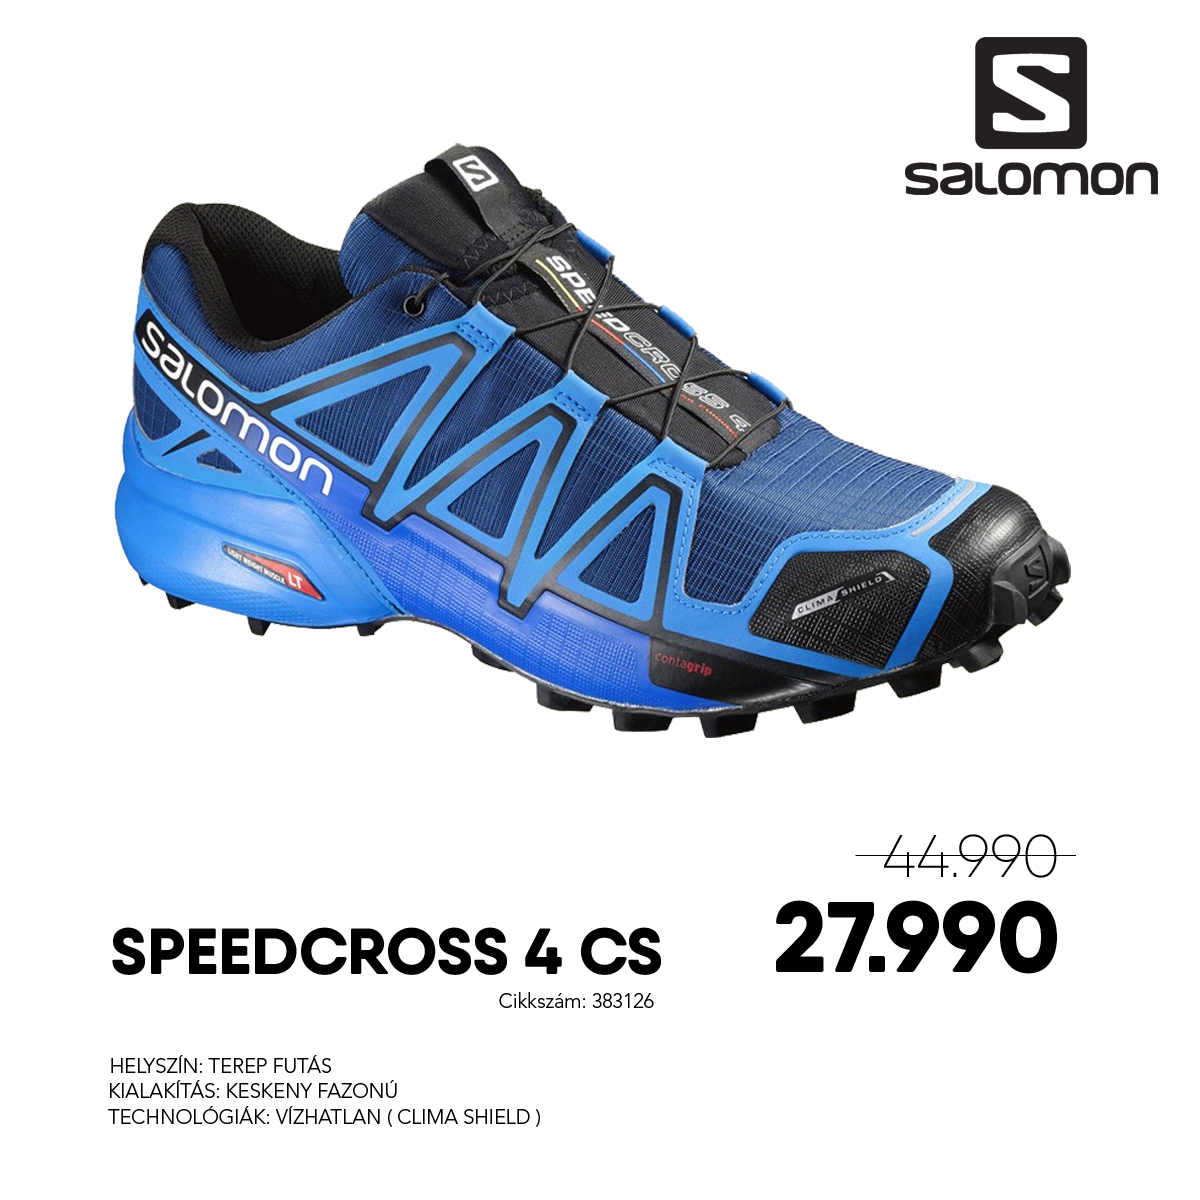 Salomon Terepfutó Cipő SPEEDCROSS 4 CS - 383126-Blue_Depth_Briblusld_Black